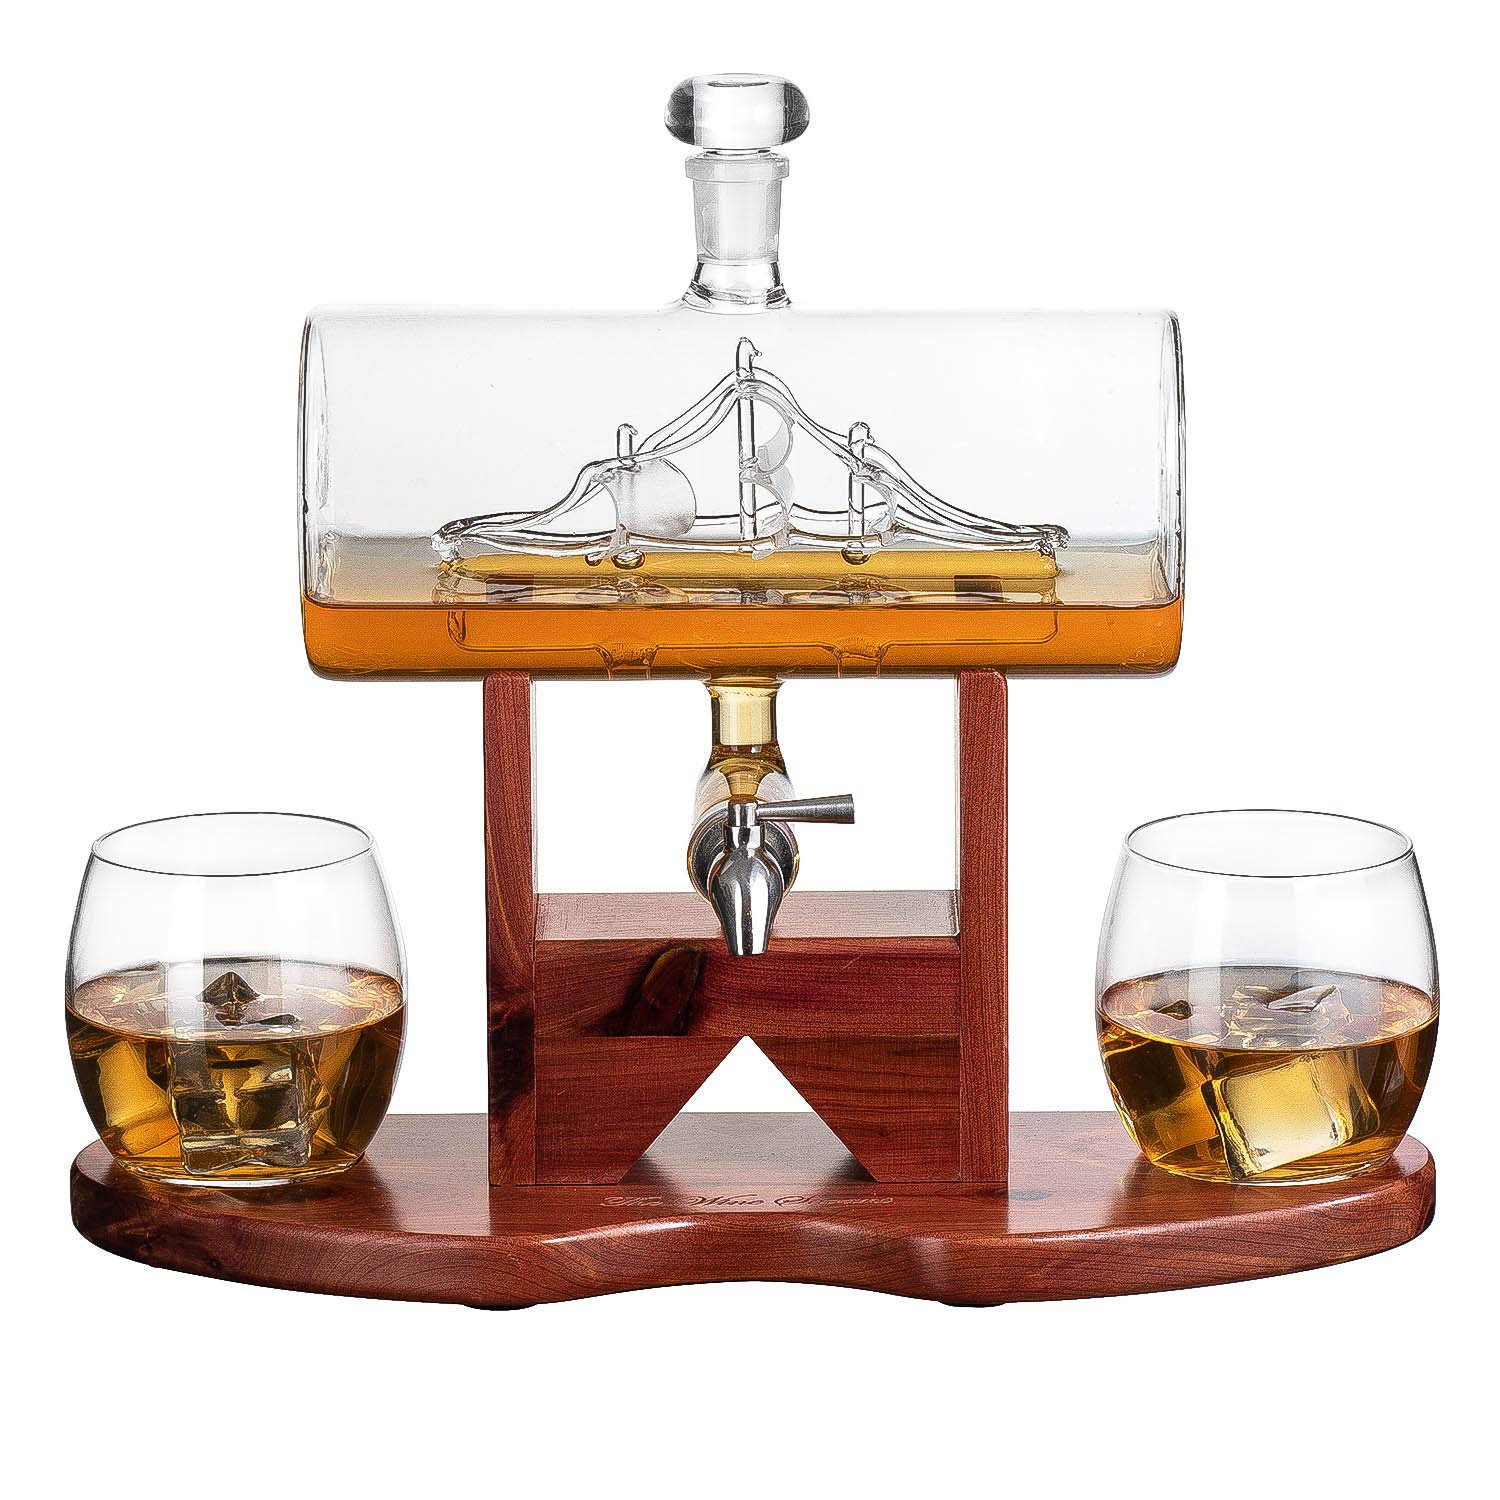 Whiskey Decanter Ship Set - Gift for Dad, Husband or Boyfriend by The Wine Savant